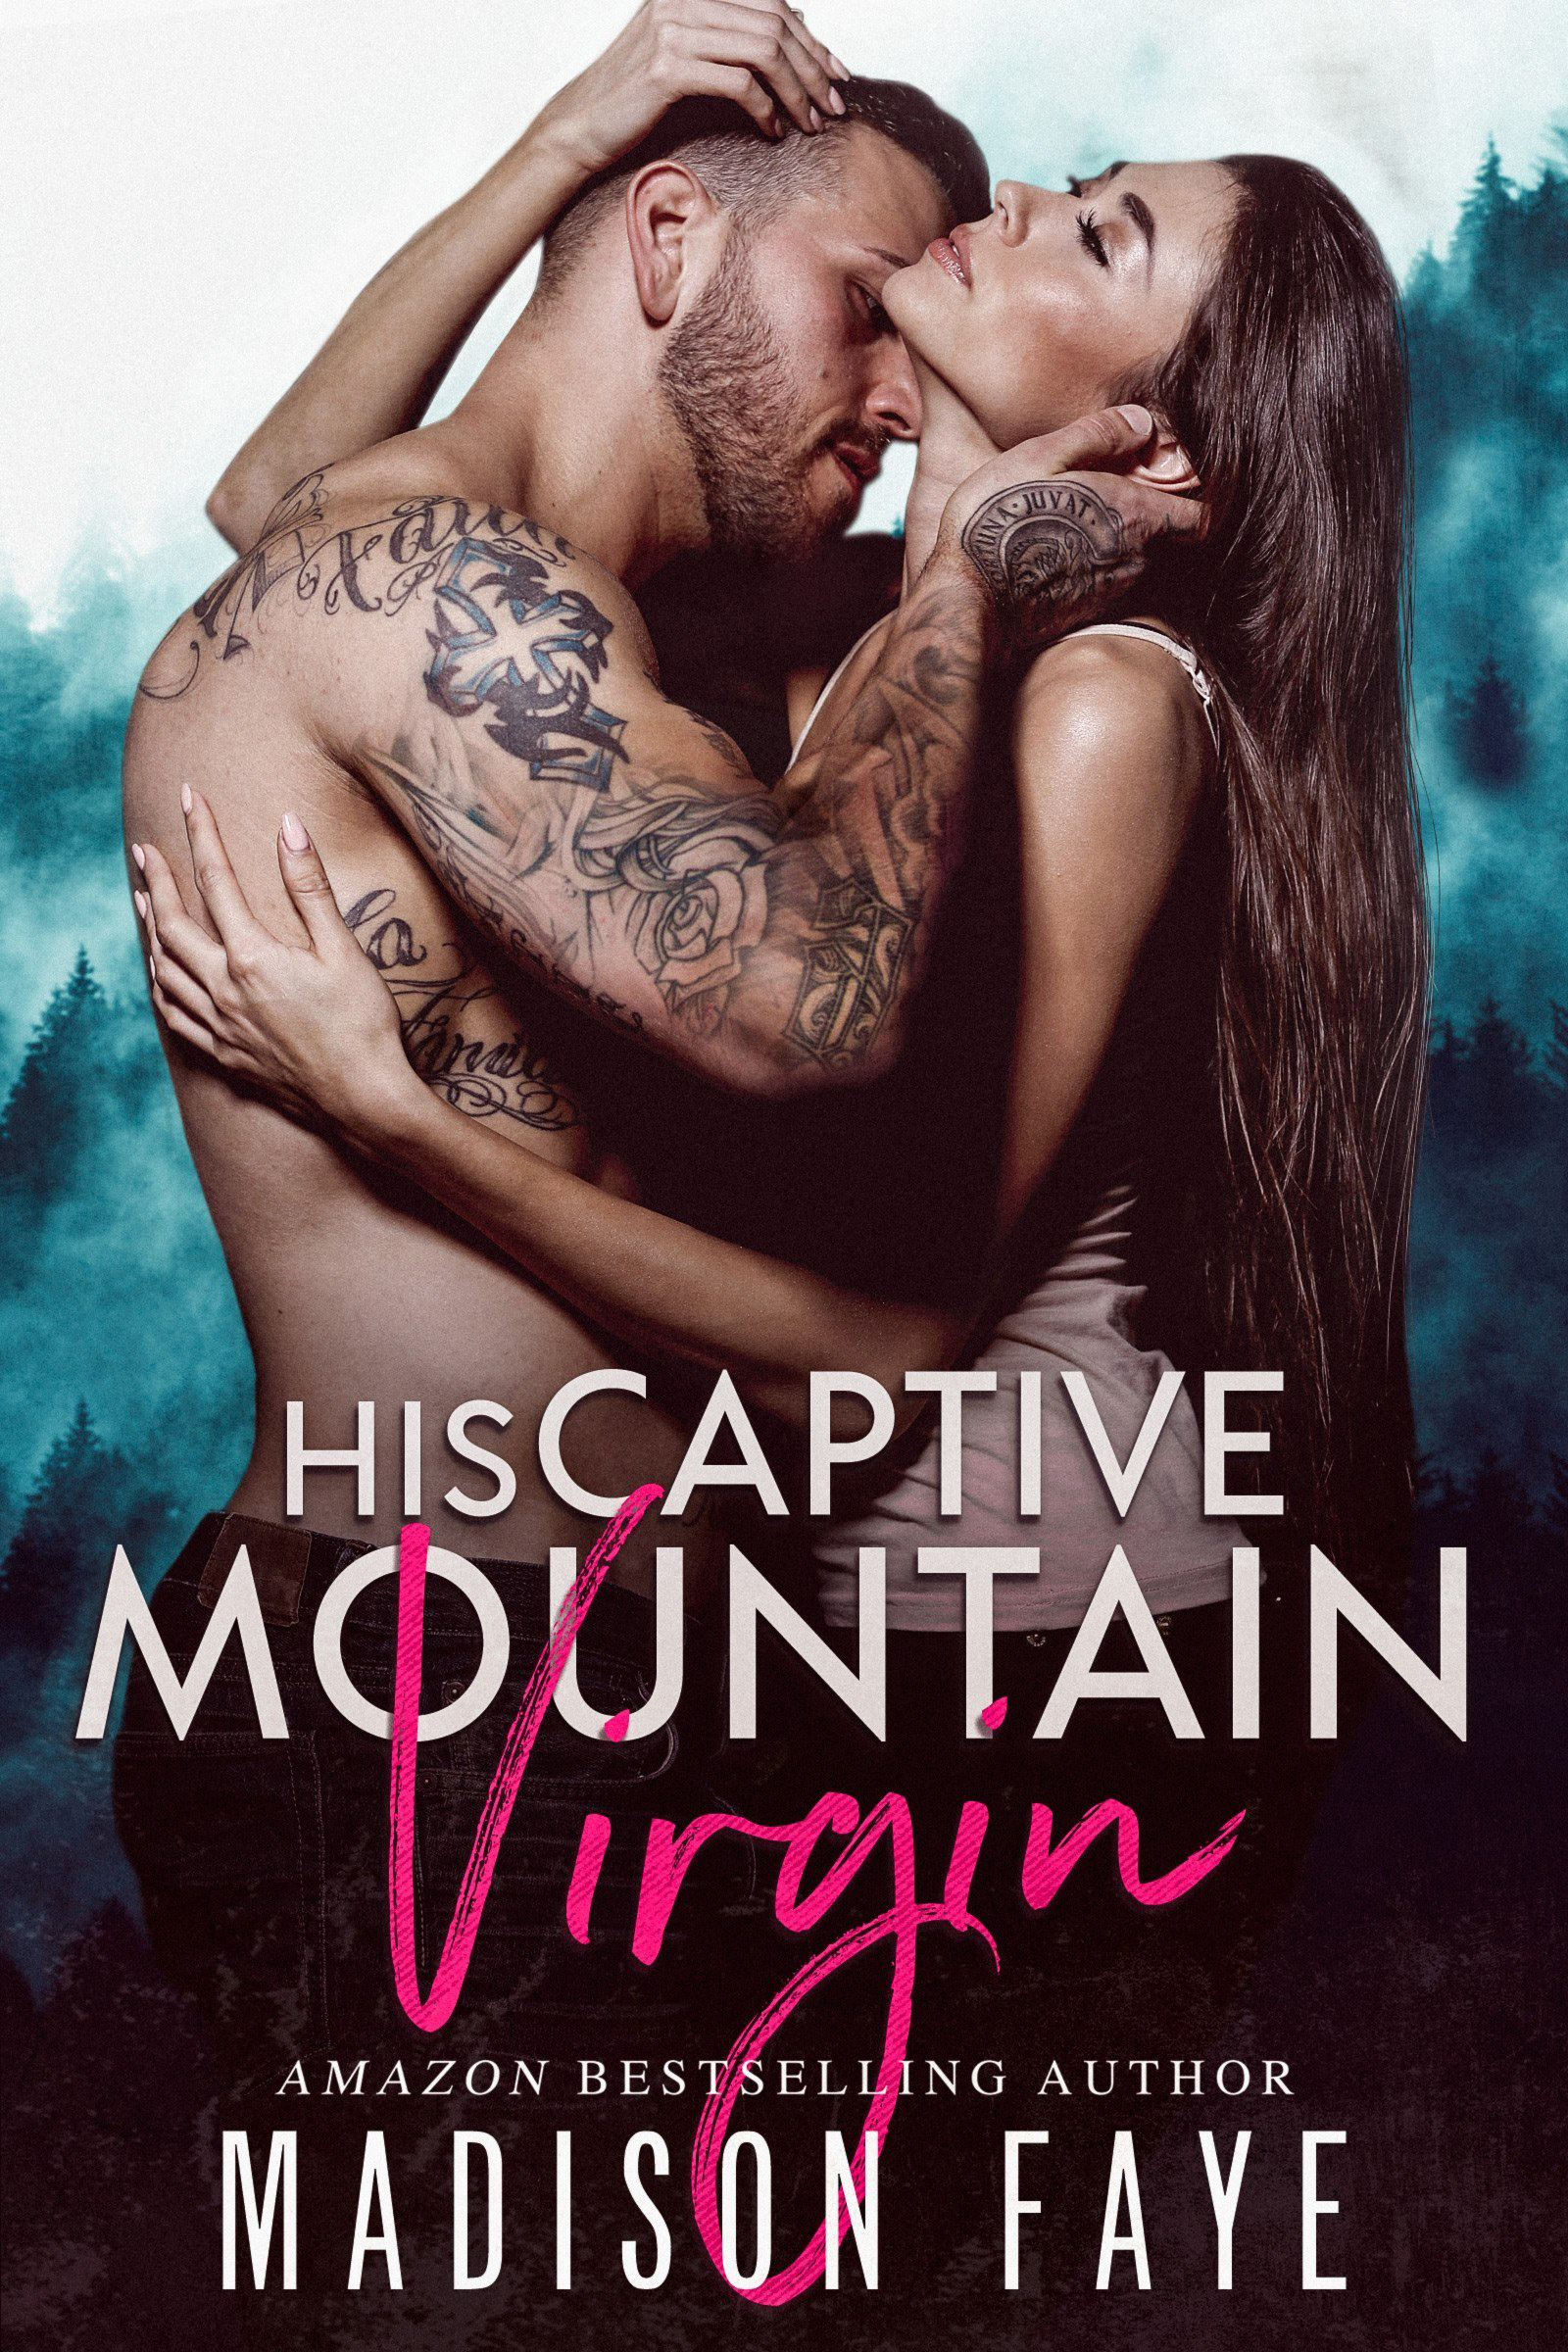 HIS CAPTIVE MOUNTAIN VIRGIN